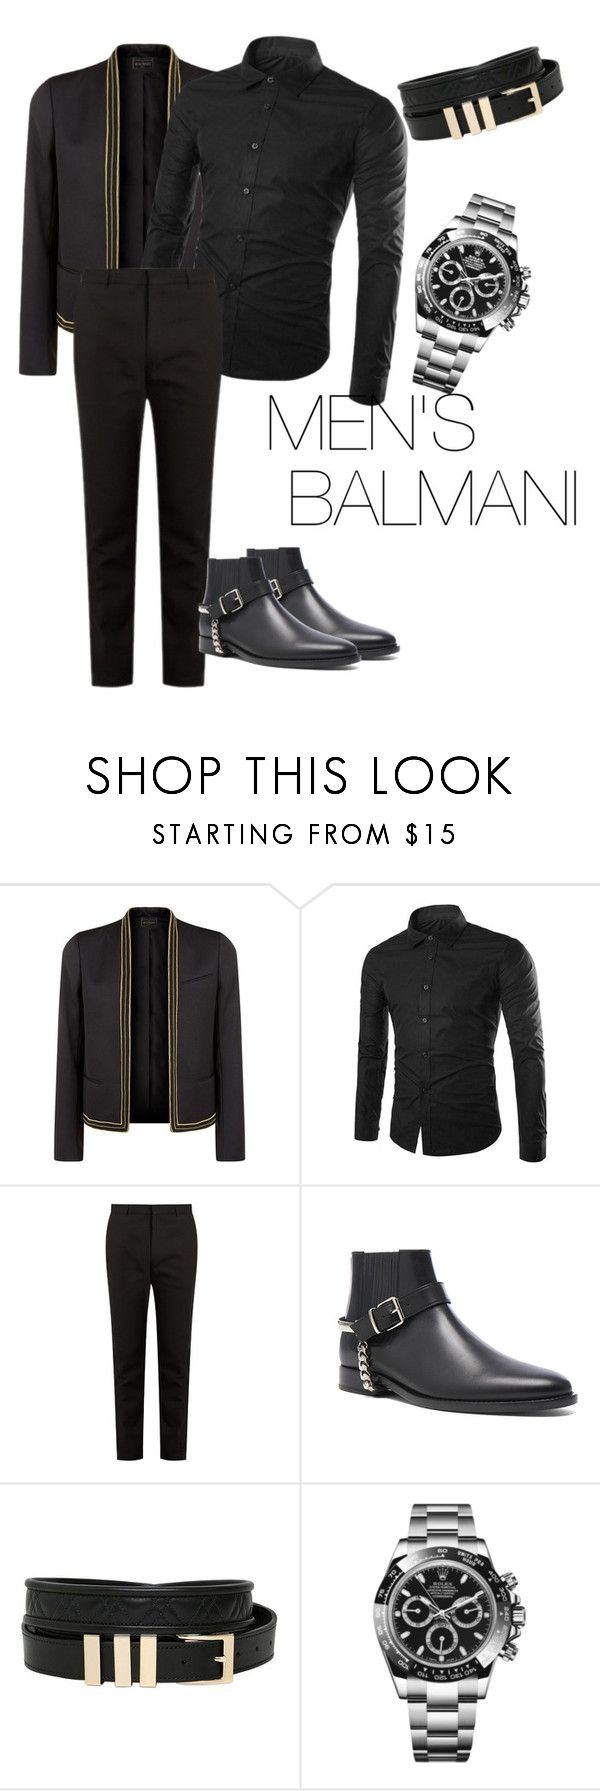 """outfit#100"" by alifia-fae on Polyvore featuring Balmain, Rolex, men's fashion and menswear"